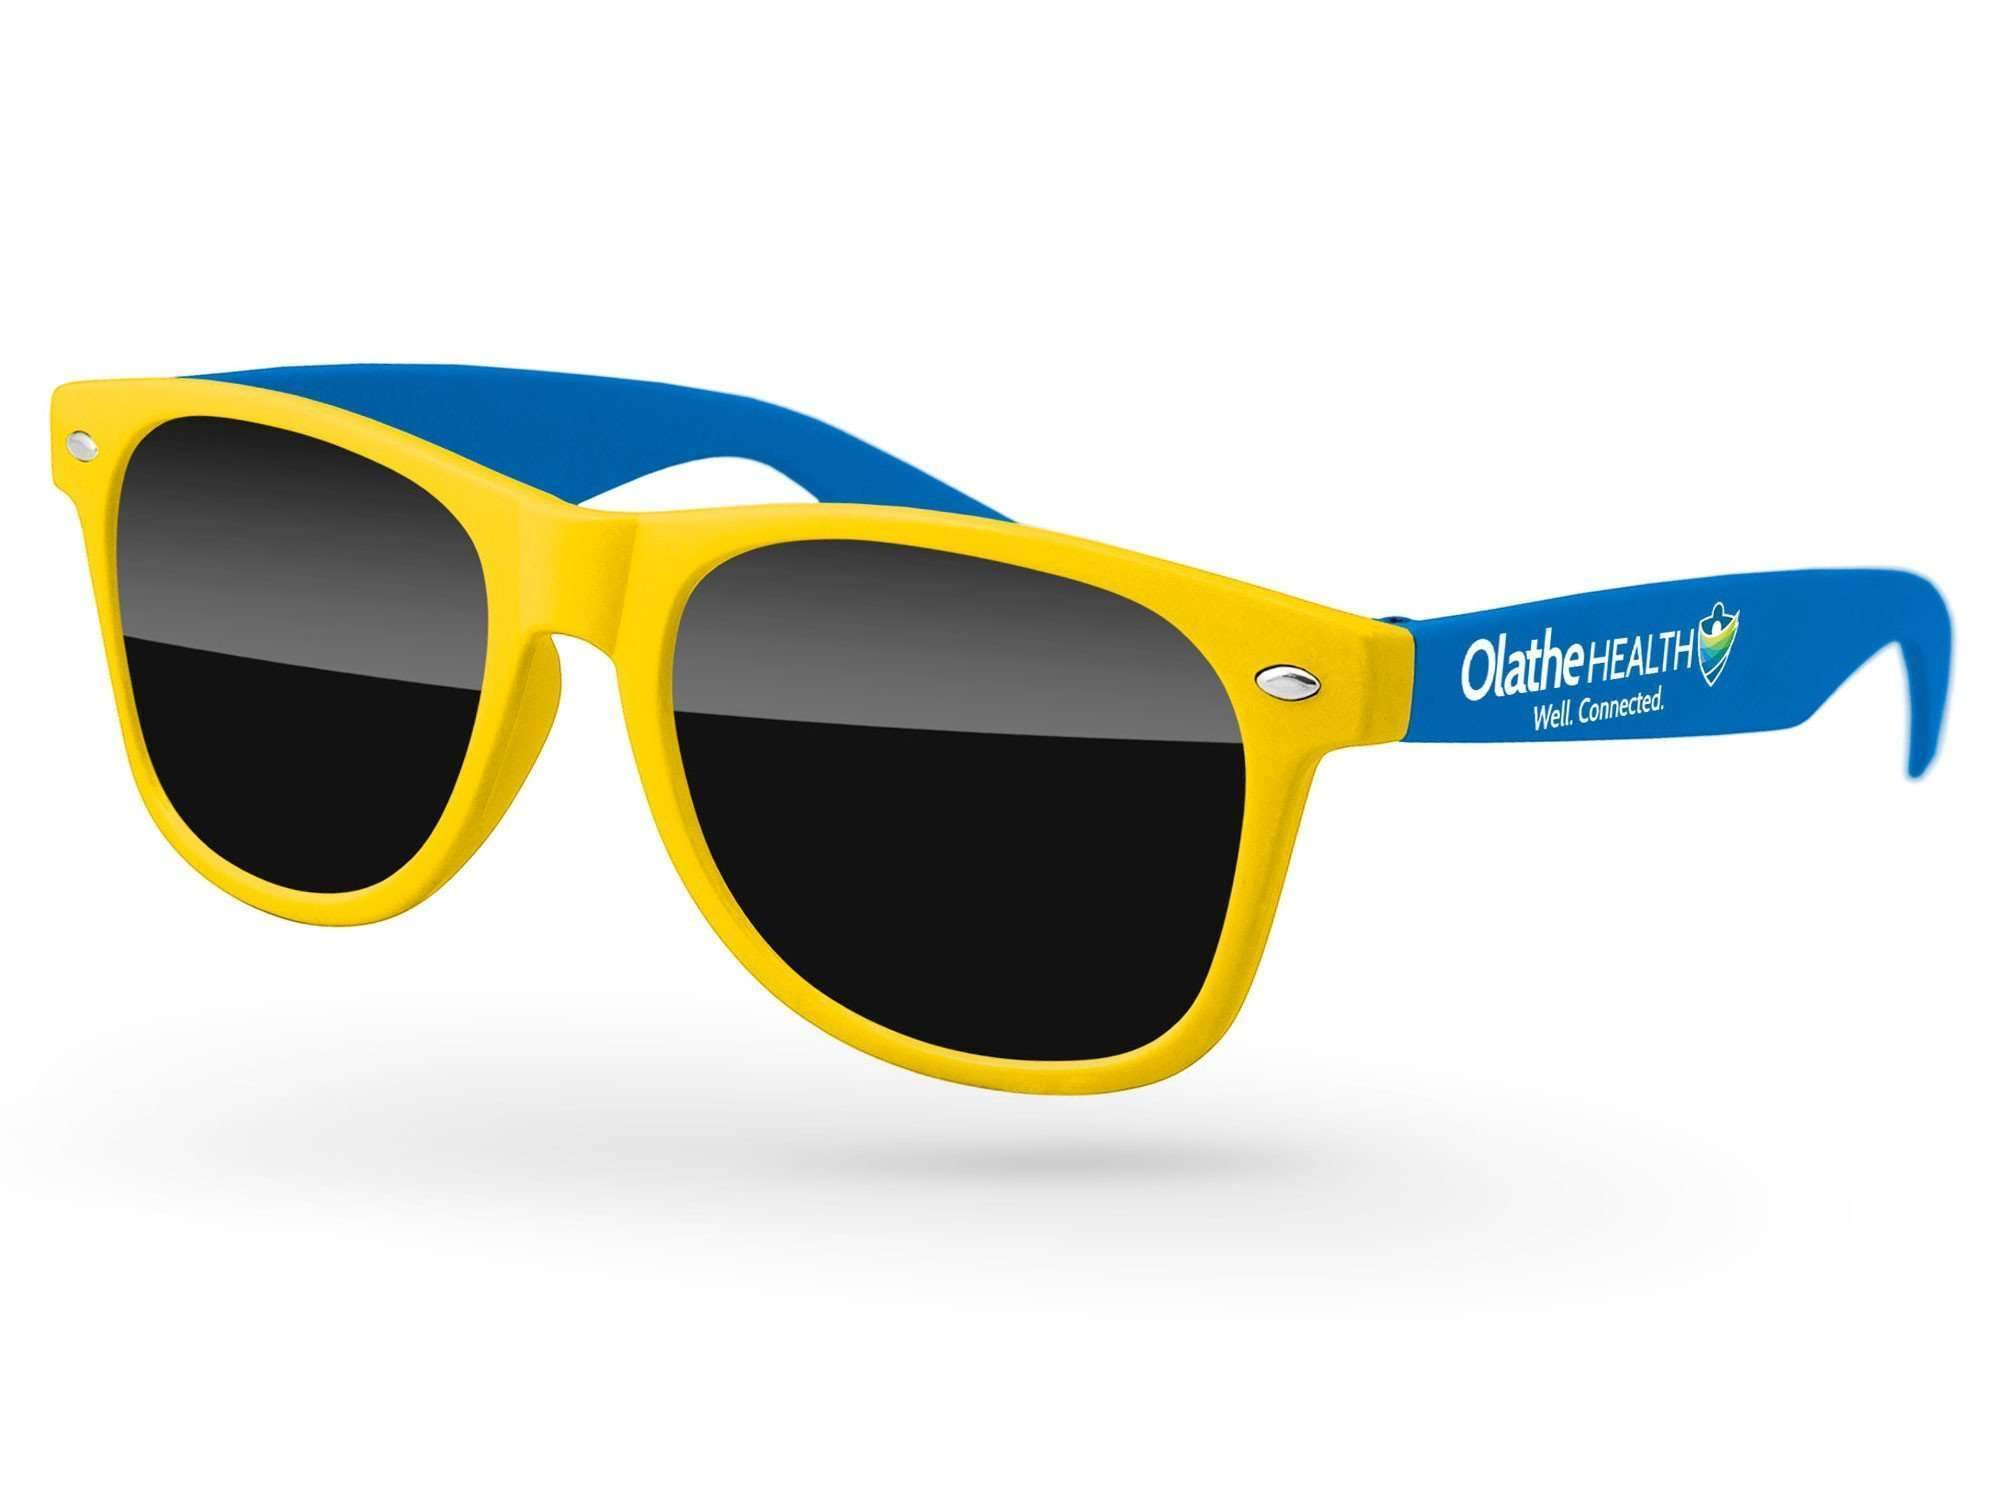 RD022 - 2-tone Retro Promotional Sunglasses w/ full-color temple imprint